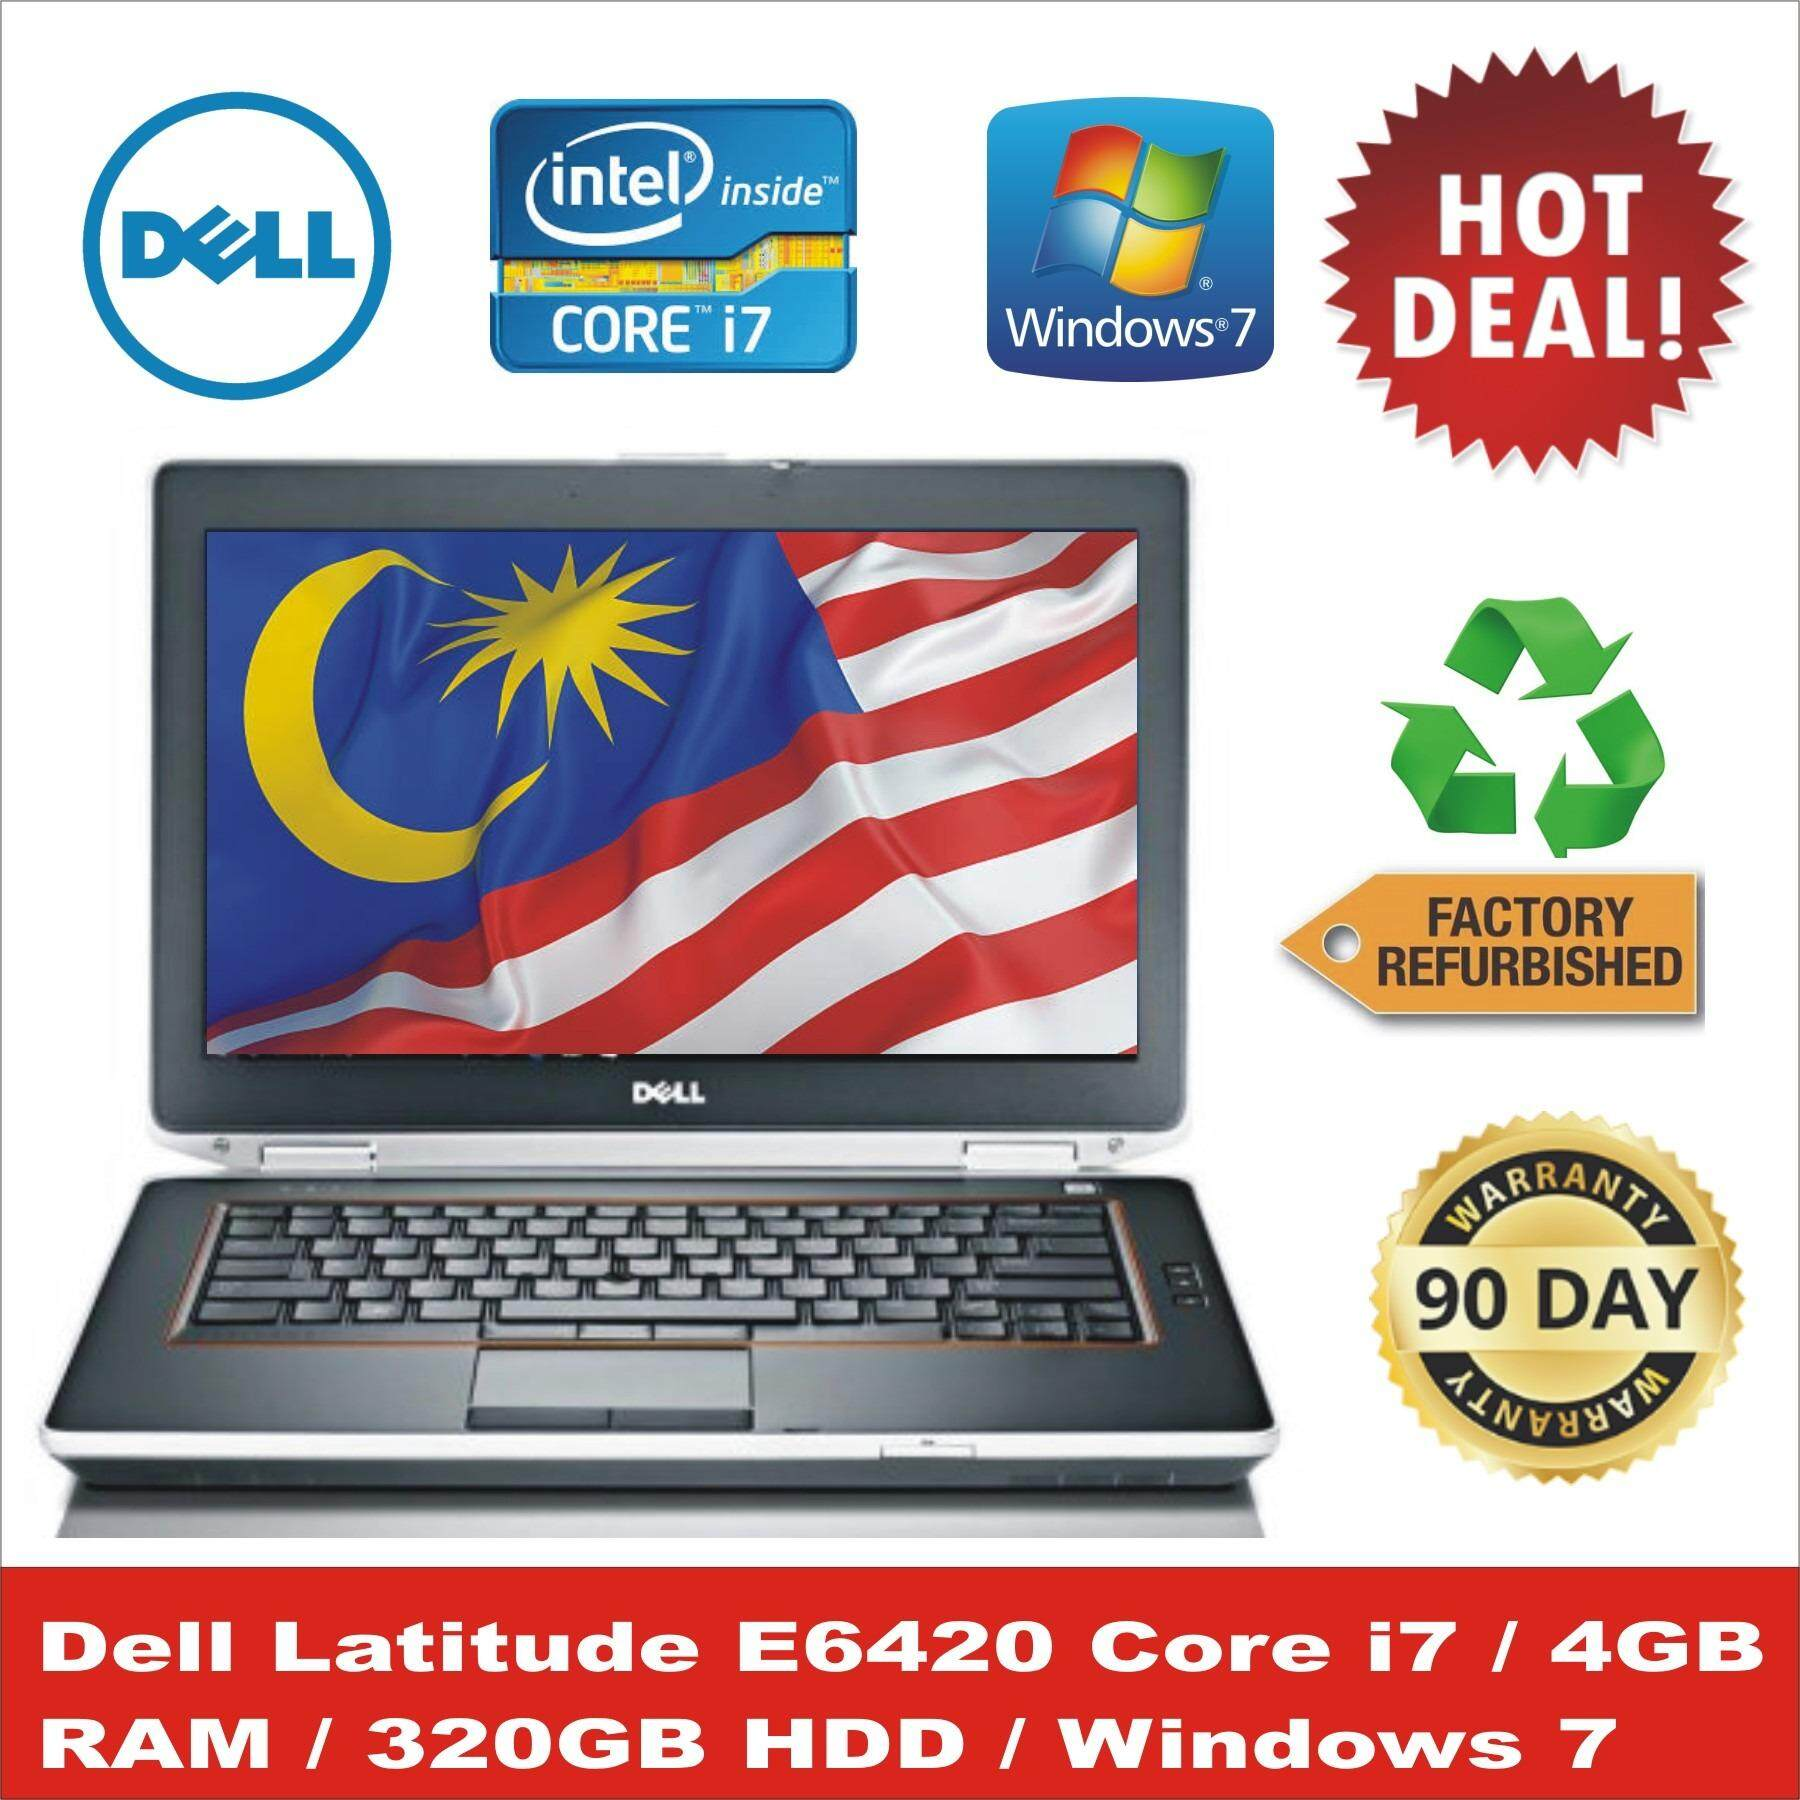 Dell Latitude E6420 - 14 - Core i7 2620M - Windows 7 Pro 64-bit - 4 GB RAM - 320 GB HDD(Refurbished) Malaysia